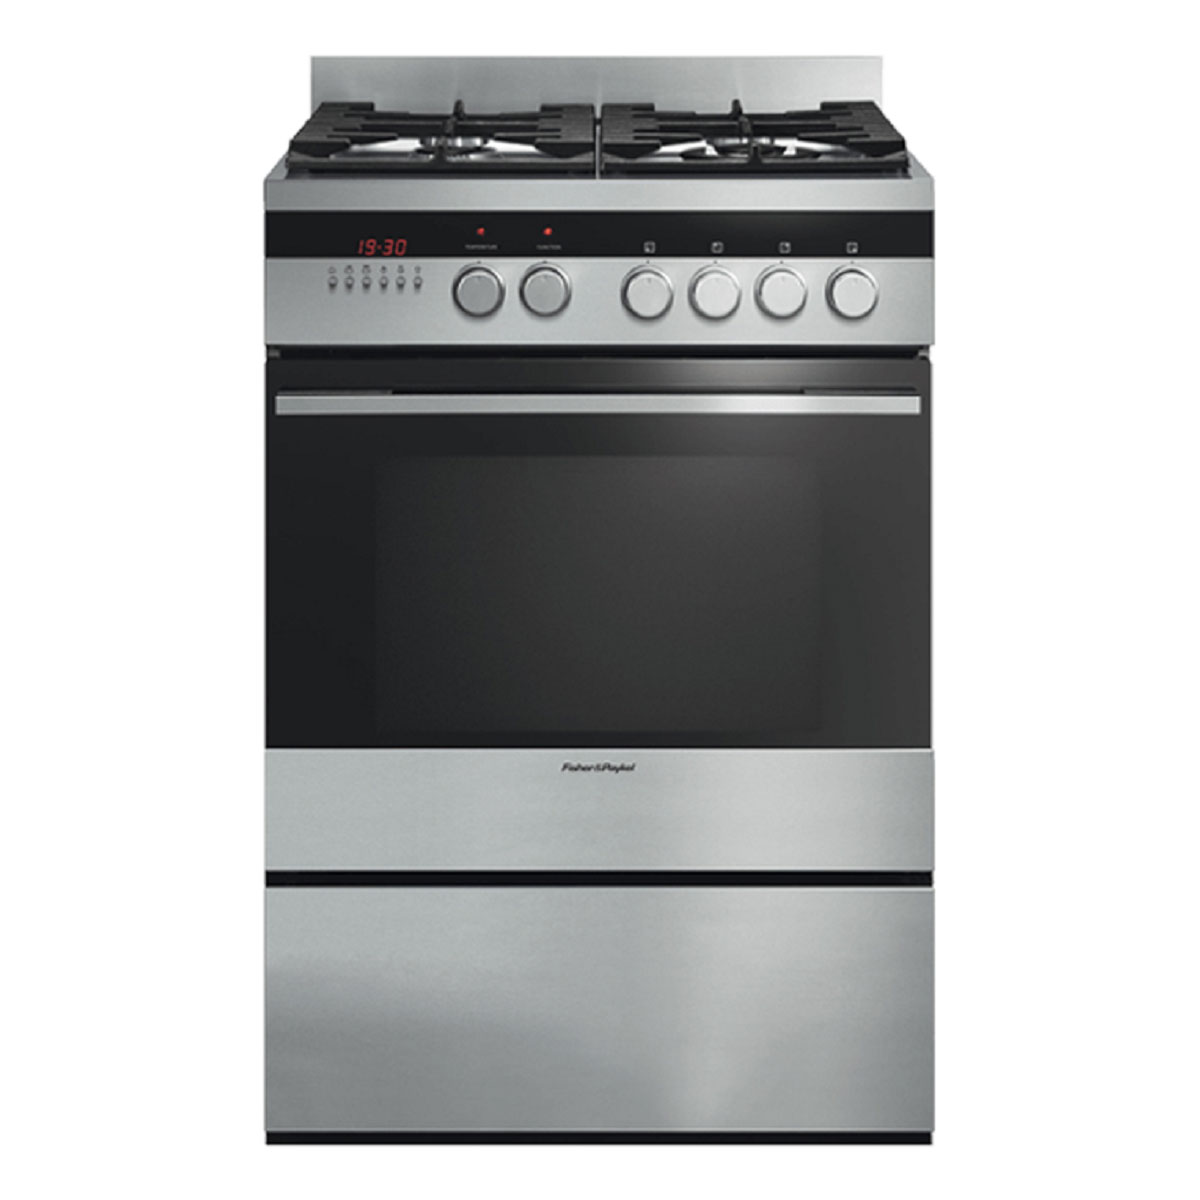 Fisher & Paykel OR60SDBGFX2 Freestanding Dual Fuel Oven/Stove